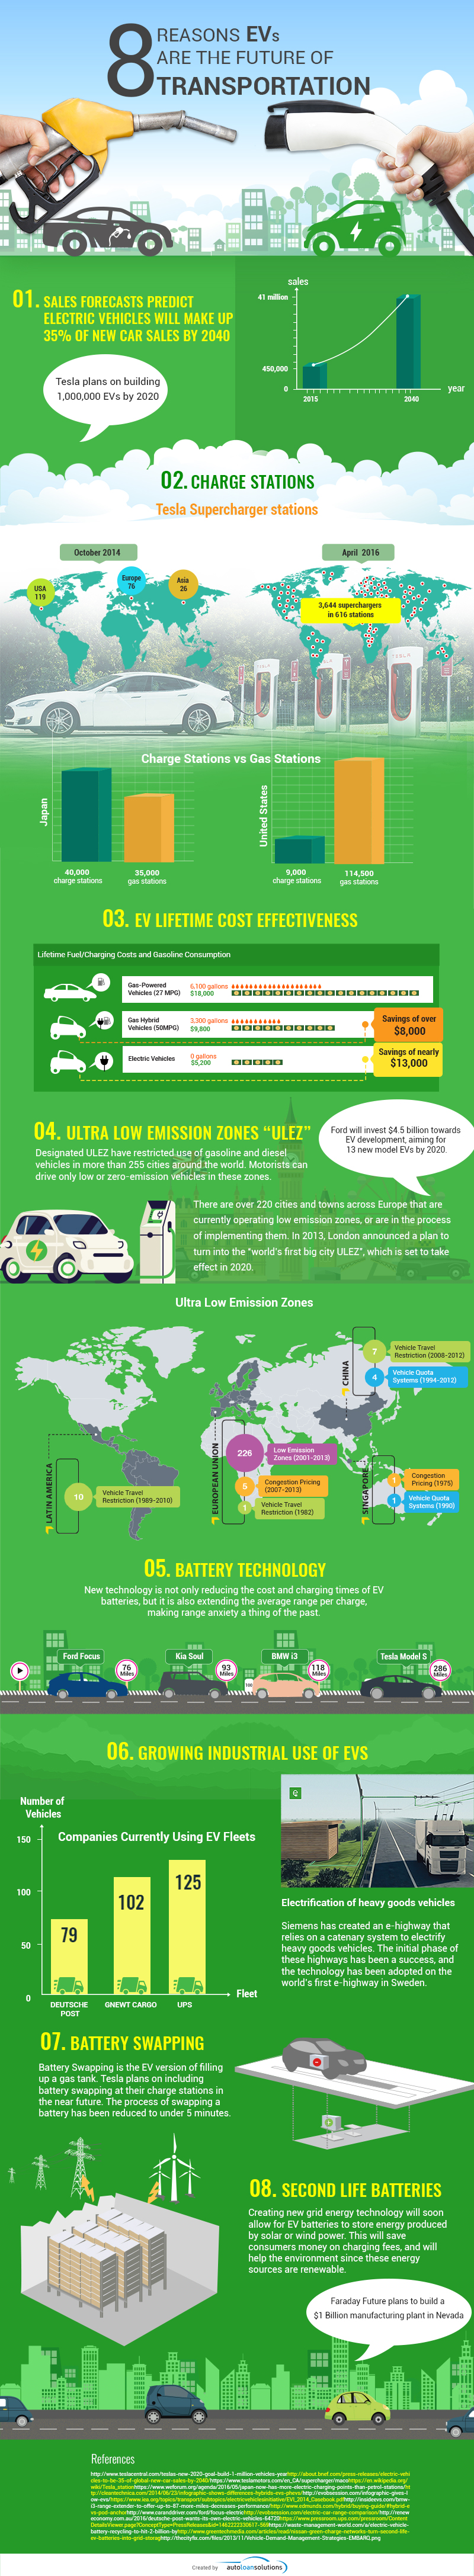 electric-vehicles-are-the-future-2